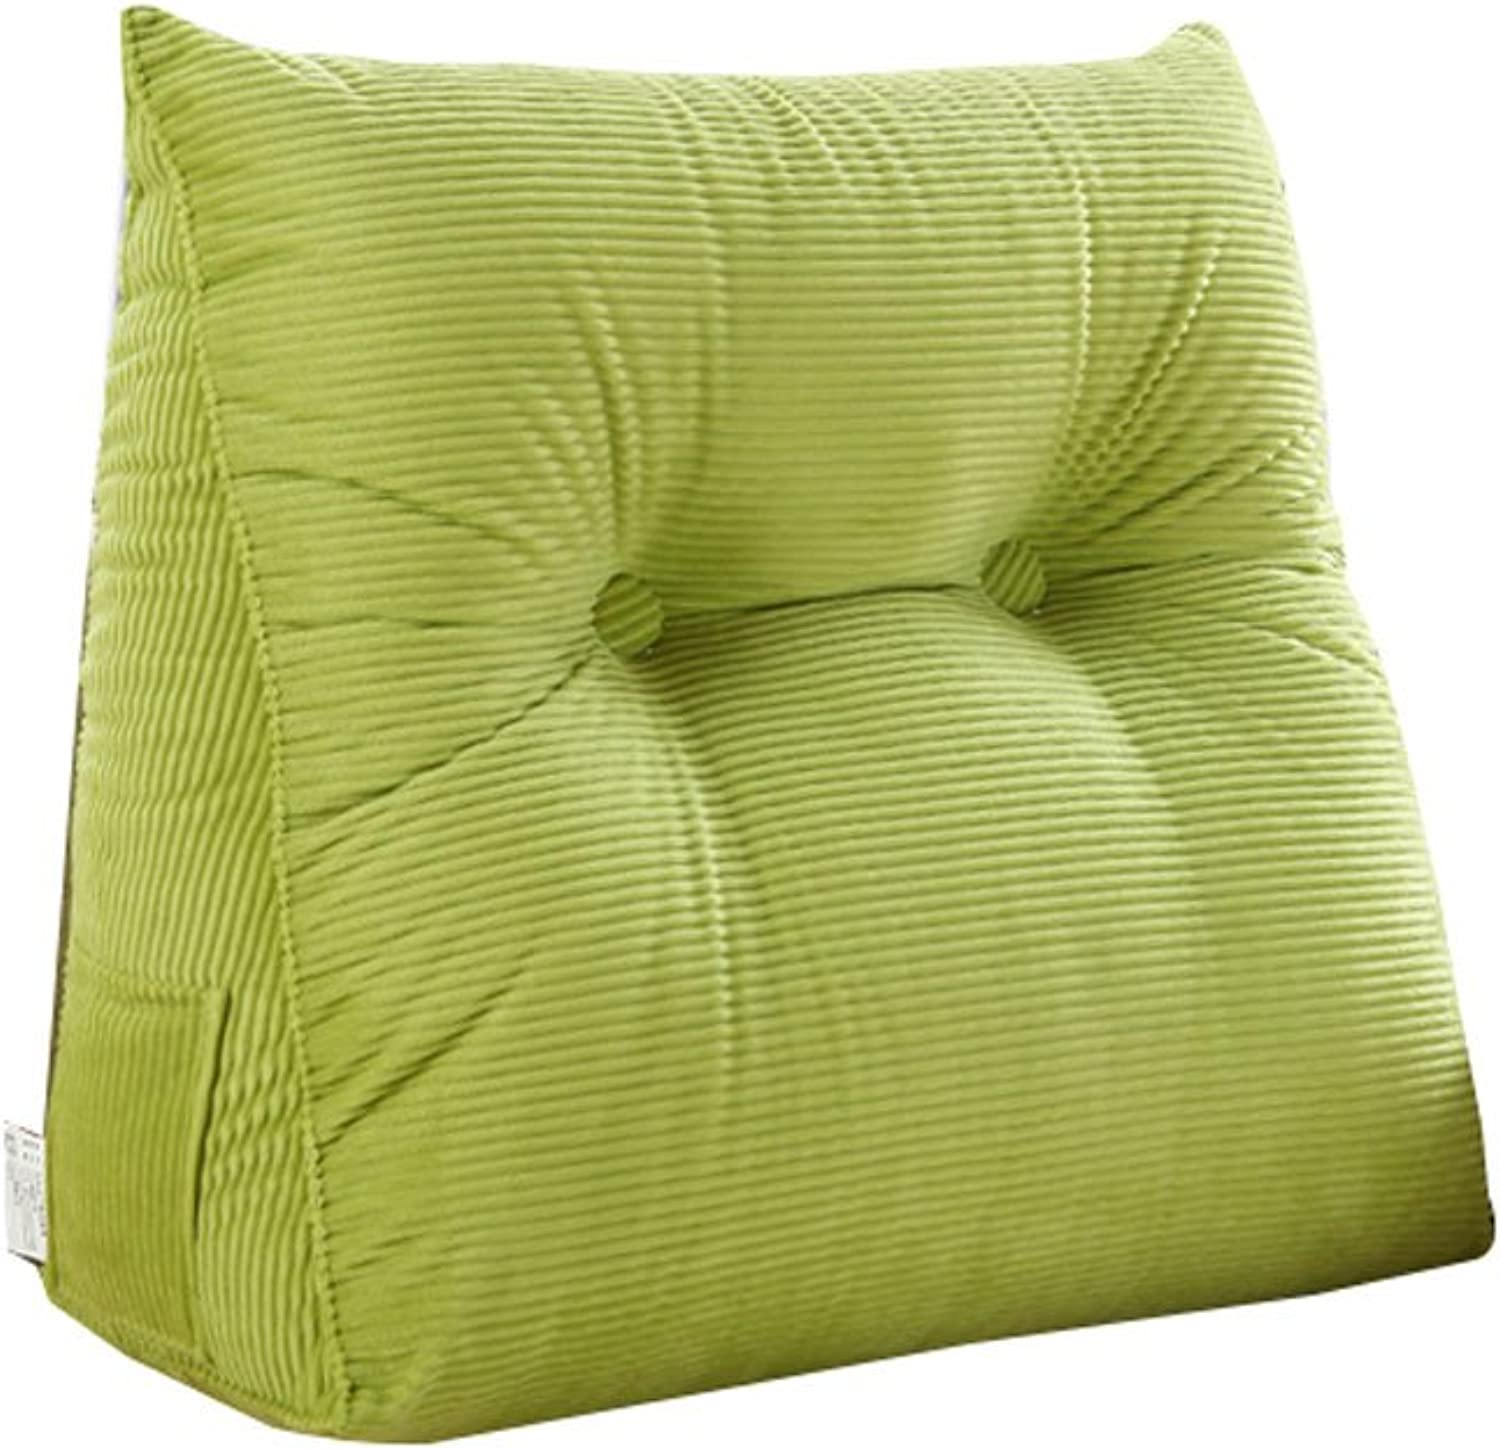 DDSS Bed cushion Bedside Triangular Cushion Large Back Bed Tatami Sofa Cushions Waist Pillow Washable 3 colors  -  (color   Green, Size   60cm20cm50cm)